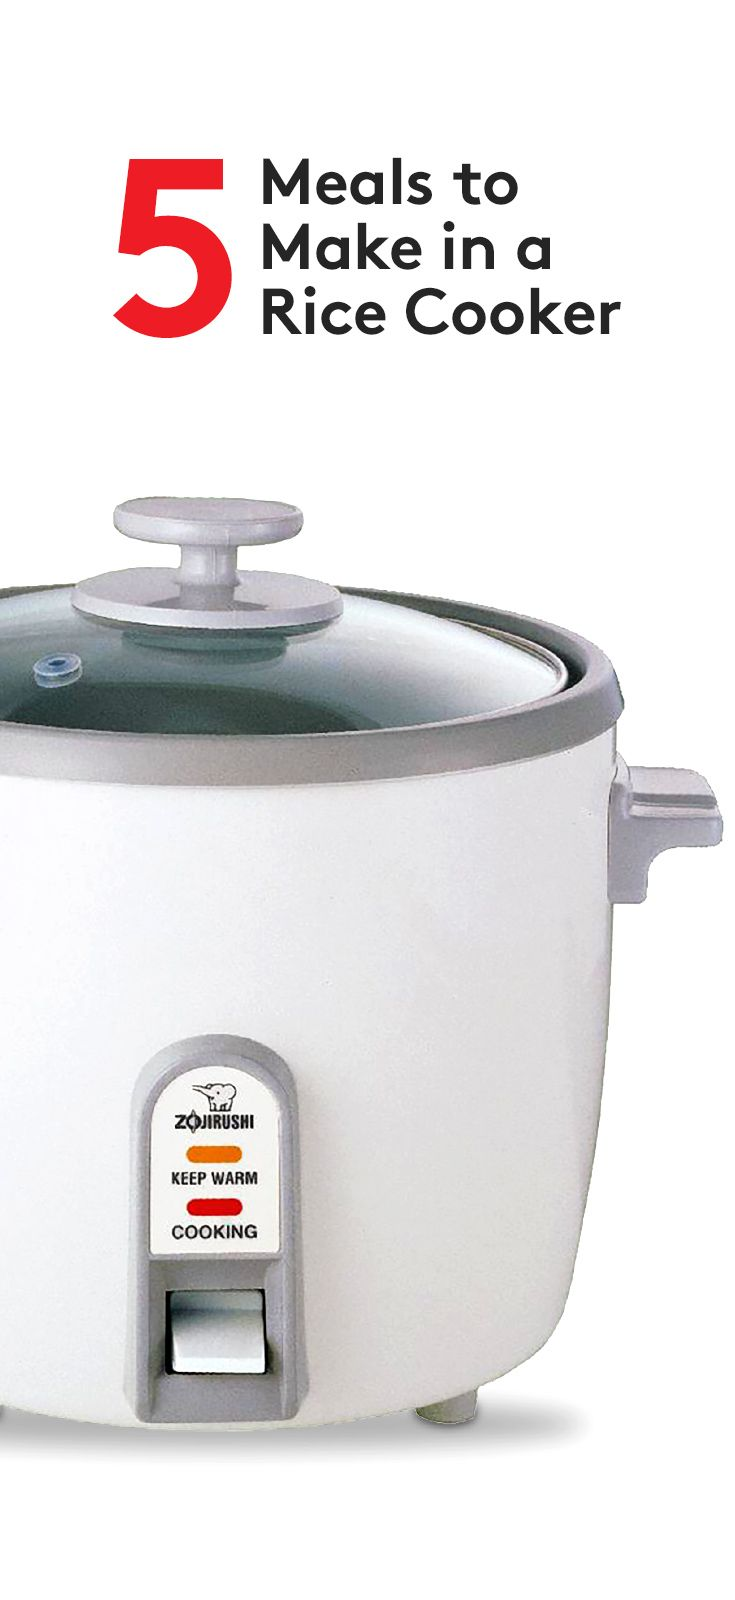 Kitchen small appliances victoria bc - 5 New Cooking Uses For Your Rice Cooker Small Kitchen Appliancessmall